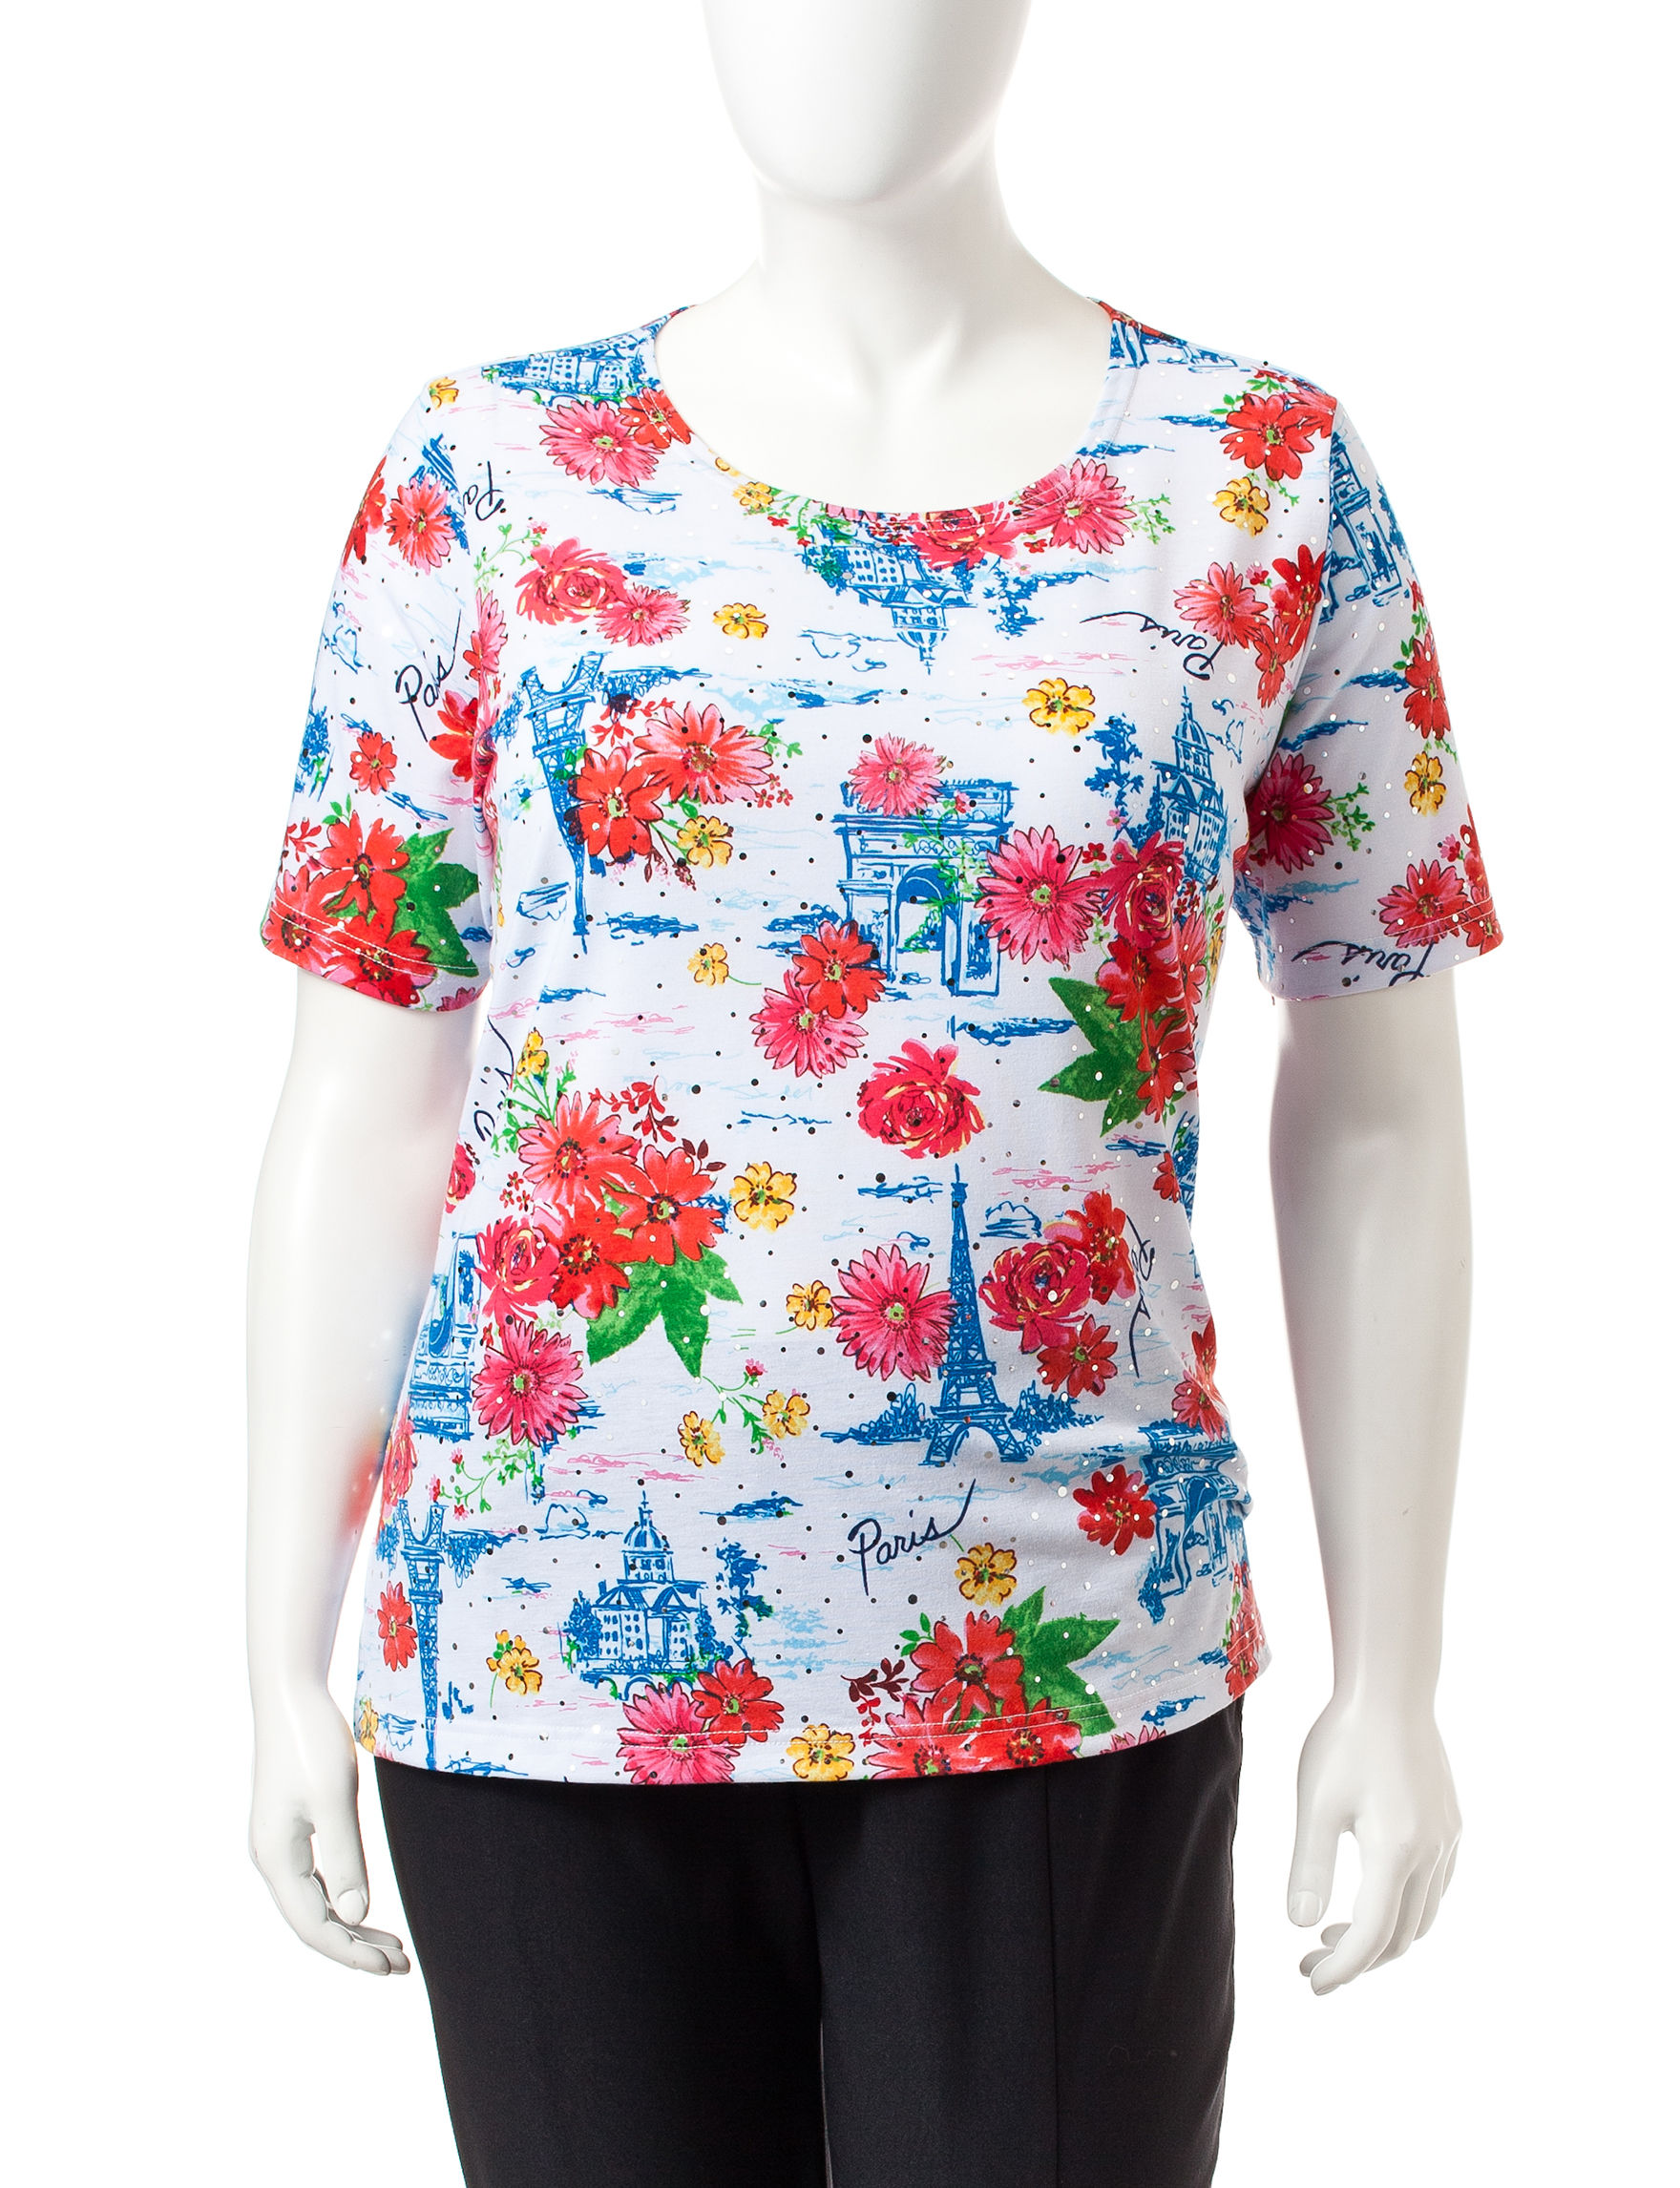 Rebecca Malone Black / White / Floral Tees & Tanks